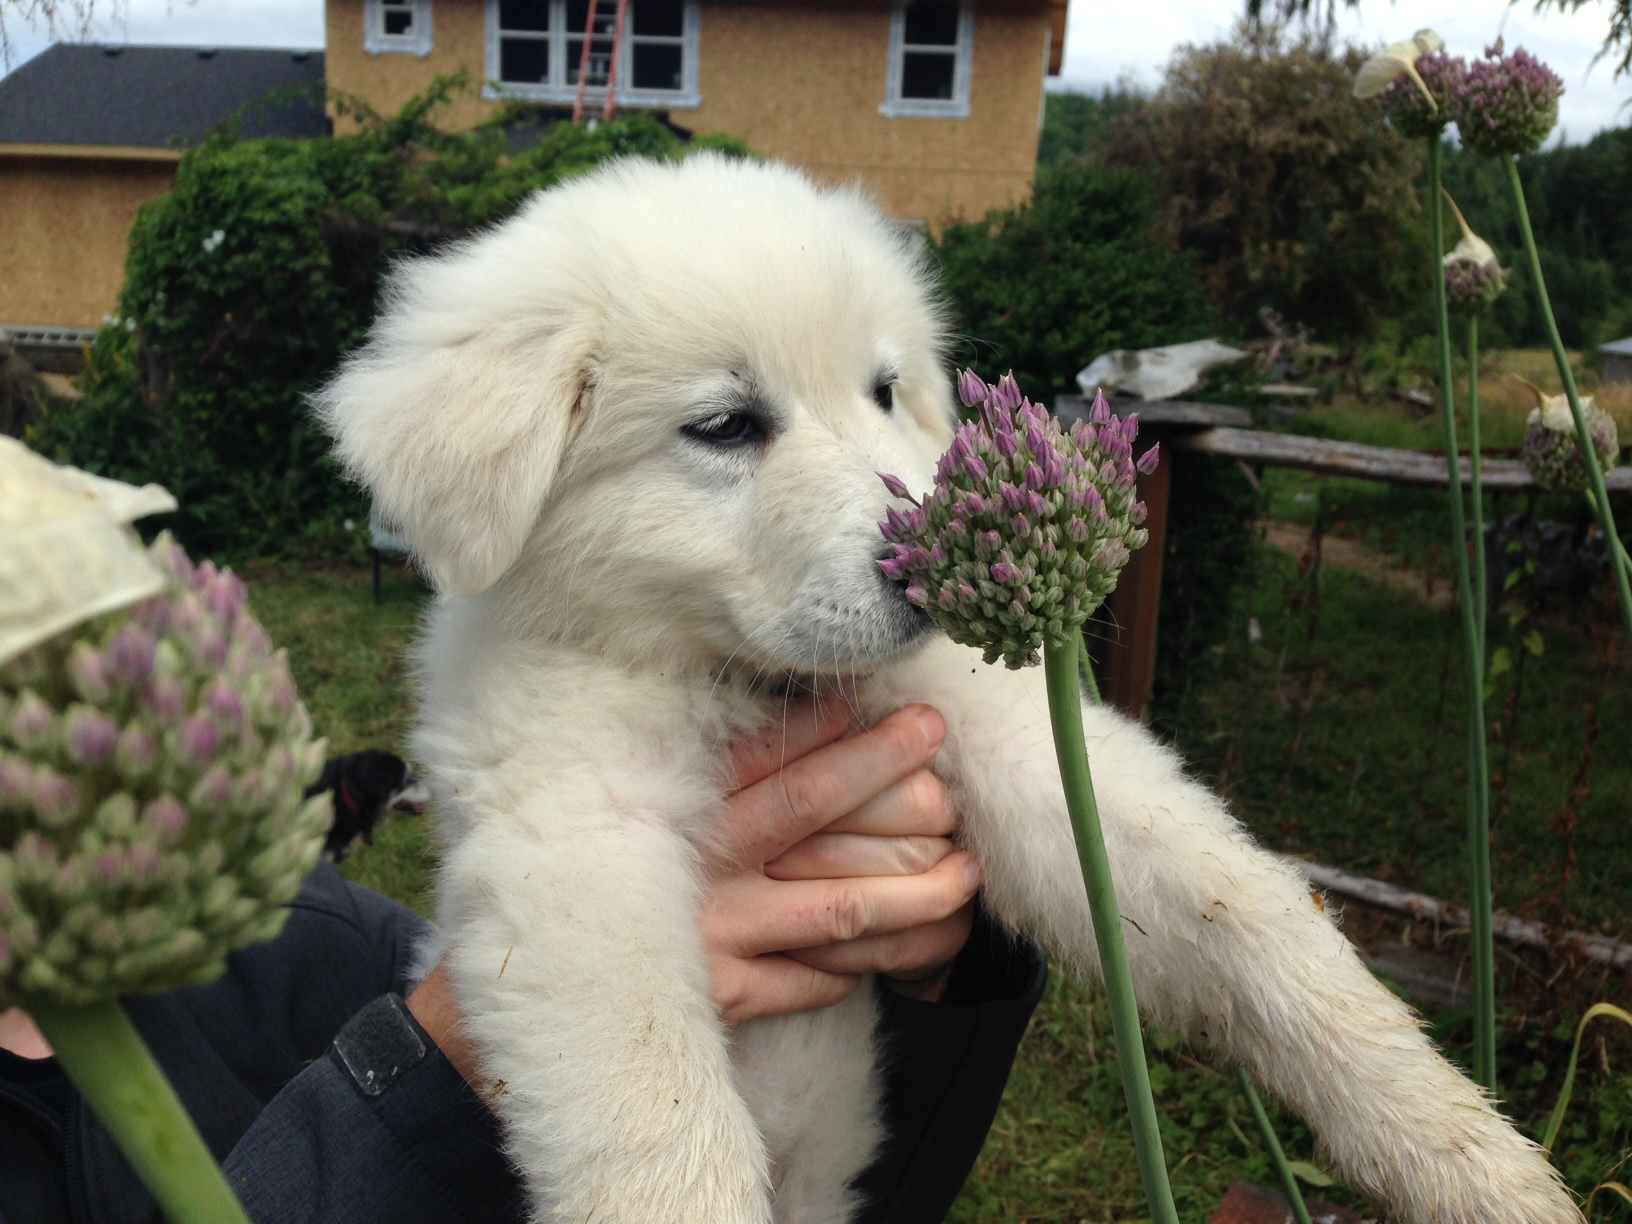 Livestock Guardian Dog - Rowan smelling the flowers